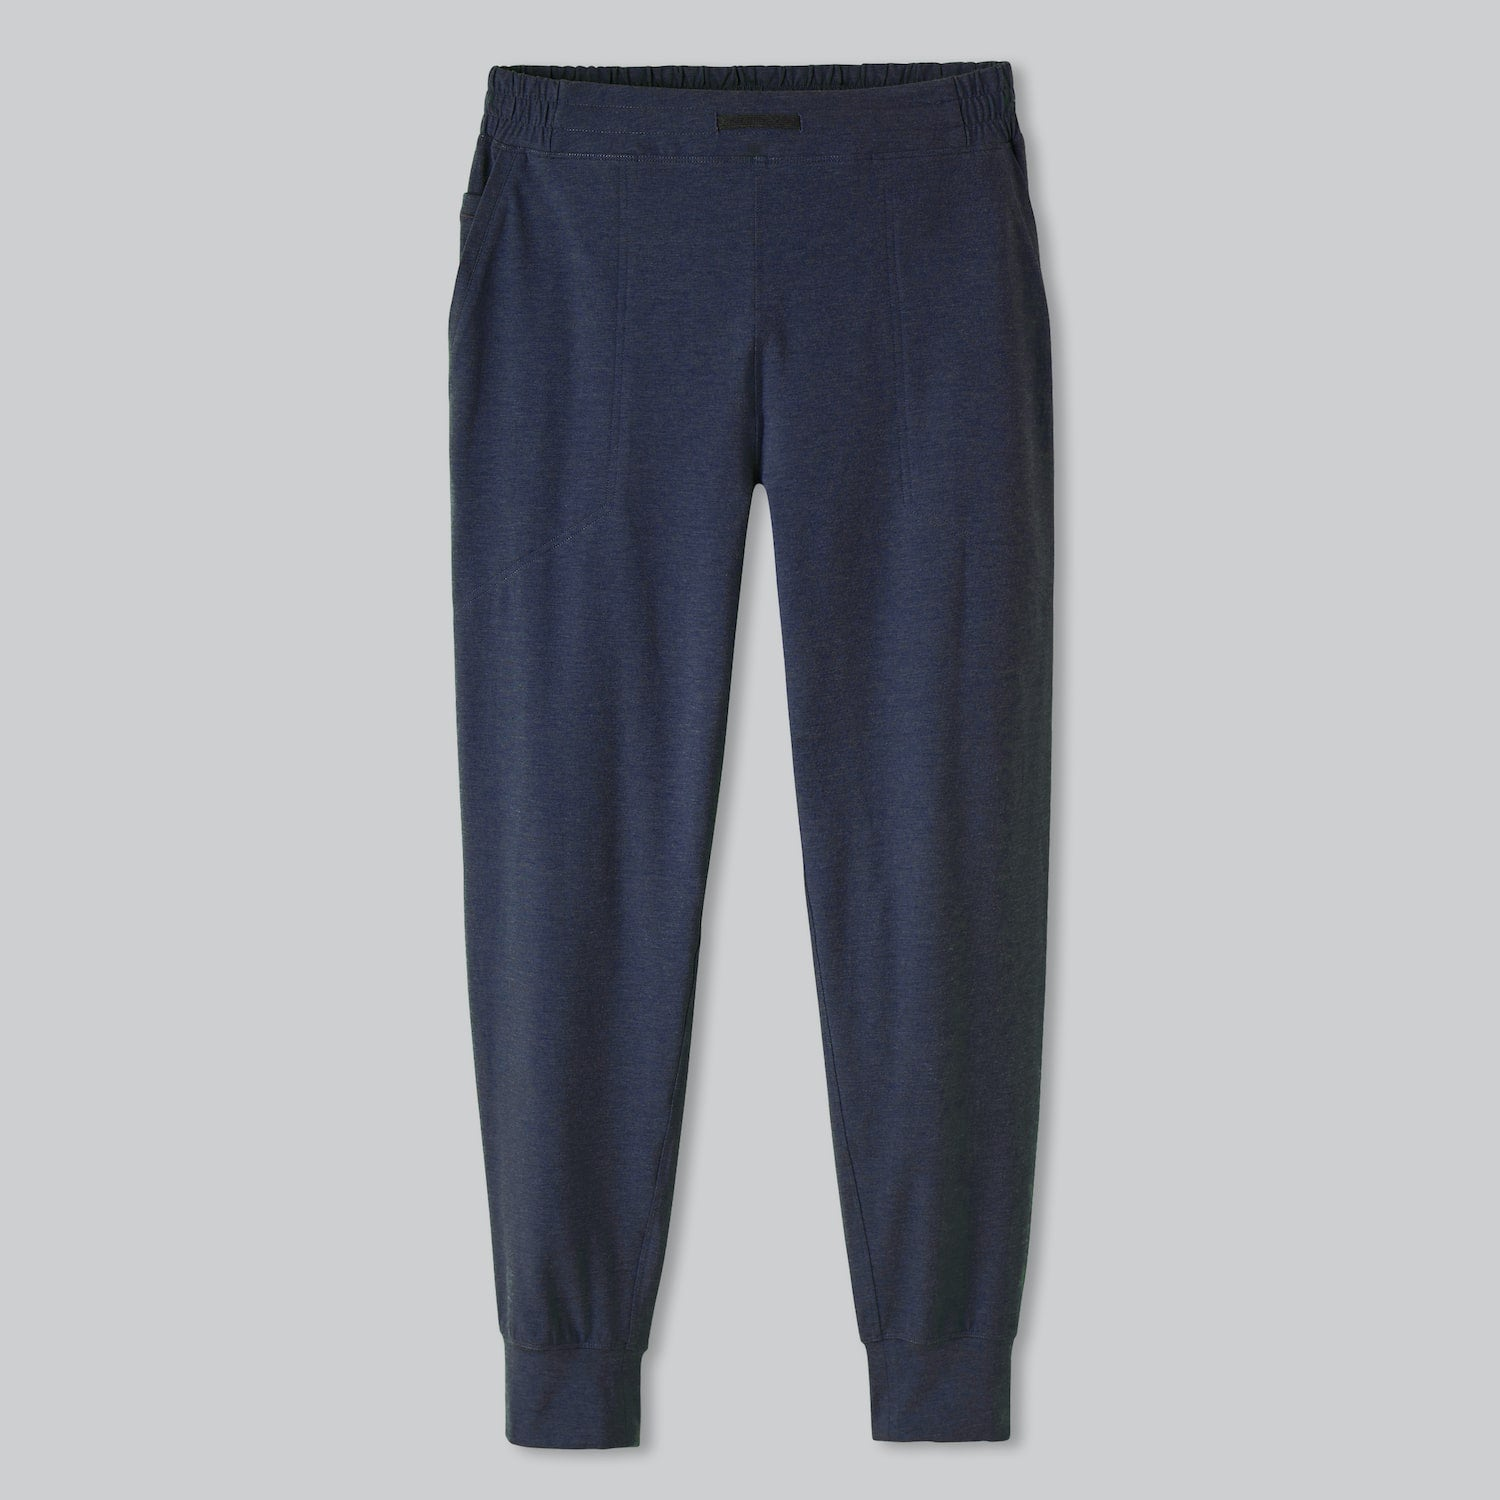 Lahgo Sleepwear Restore Jogger - #Deep Blue Heather